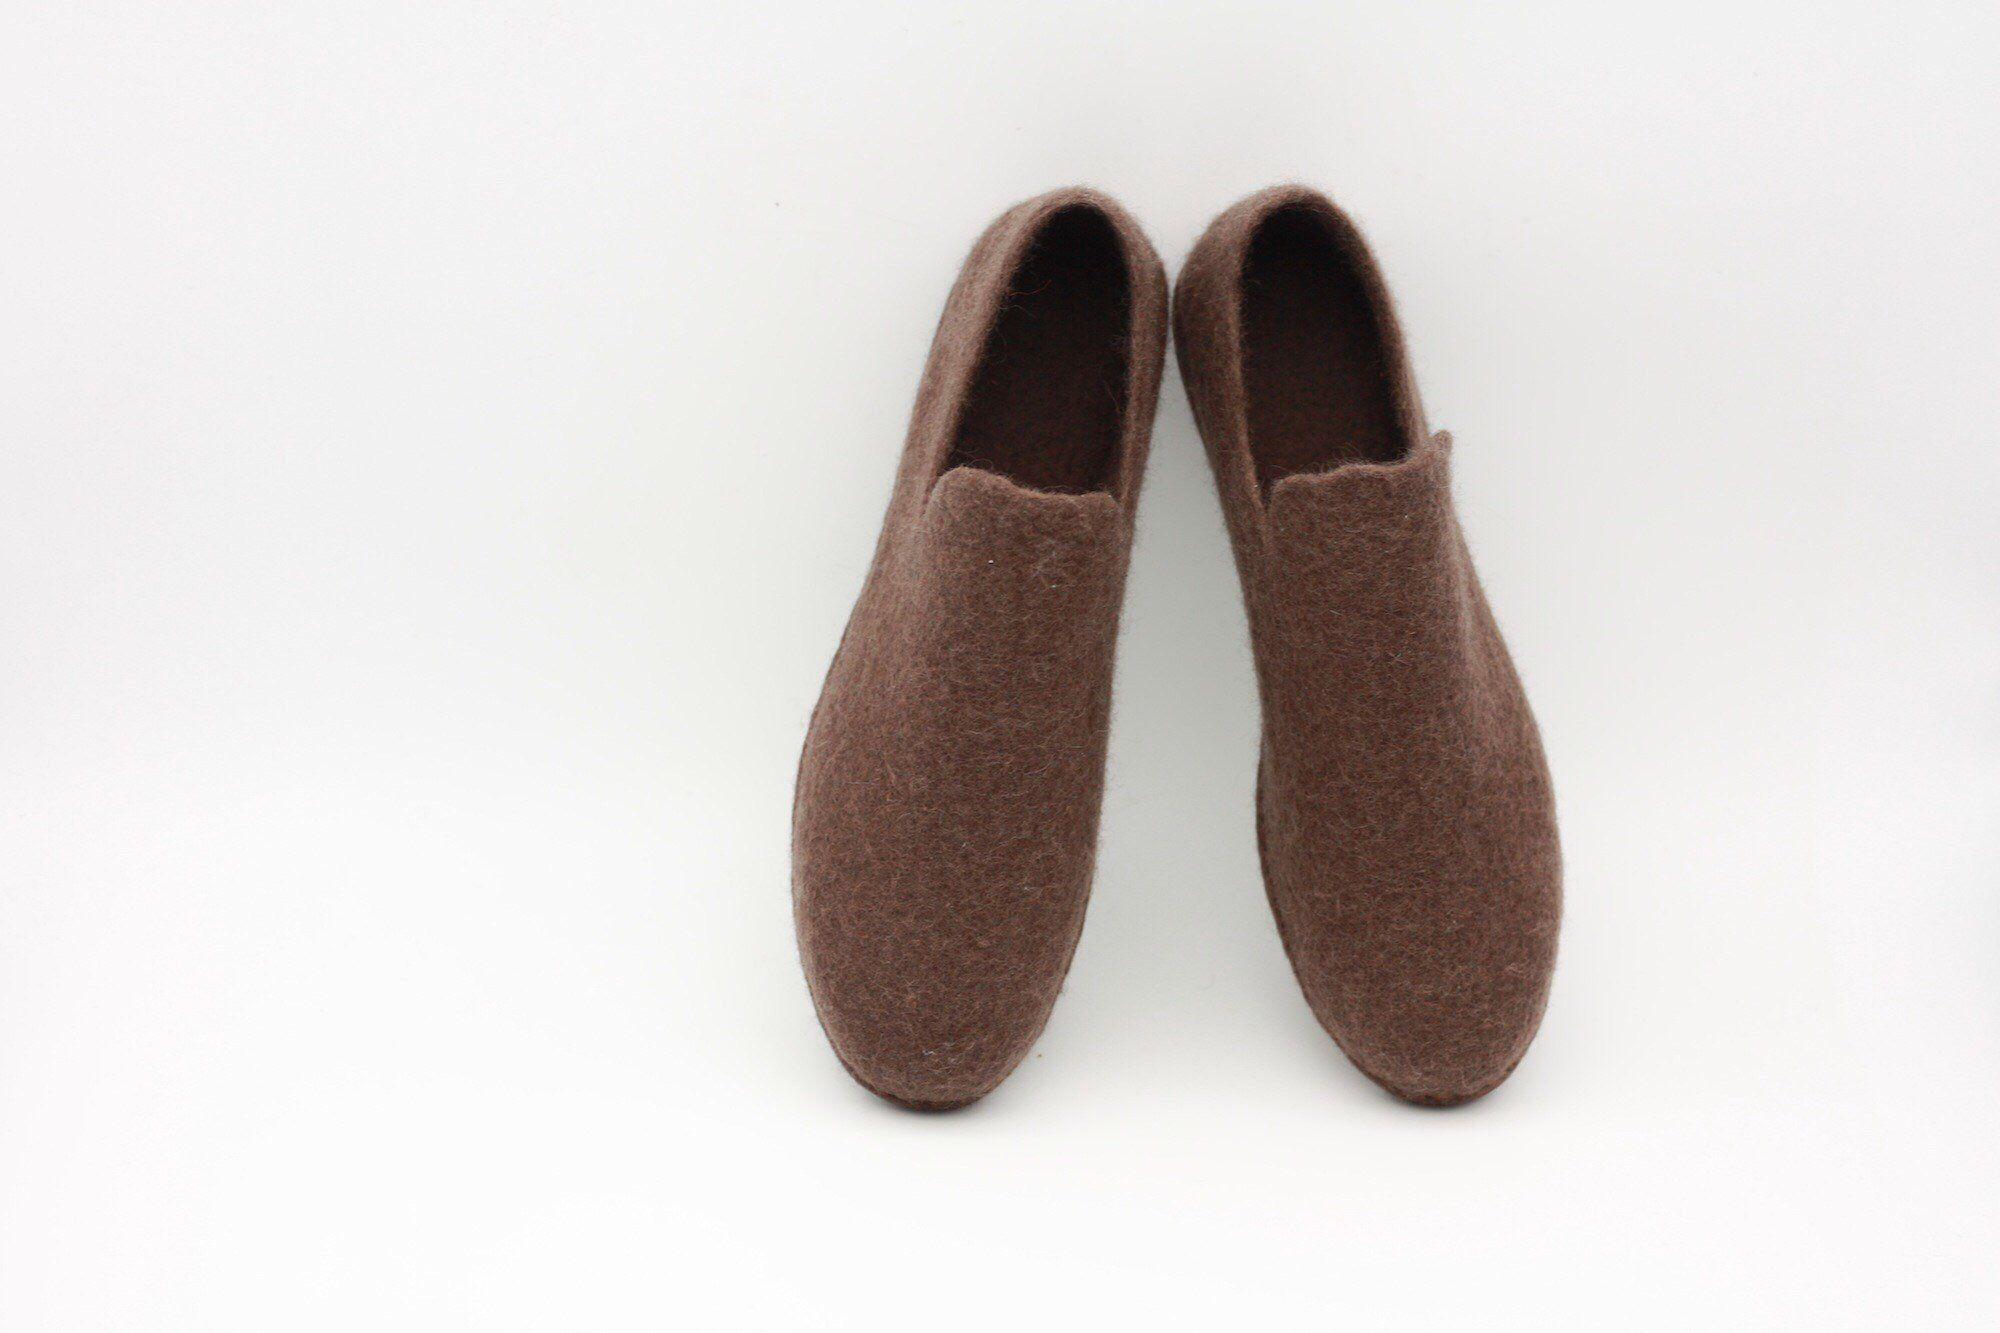 aa070232b6a3e Pin by lucielalune on = Designer shoes = | Shoes, Barefoot shoes ...